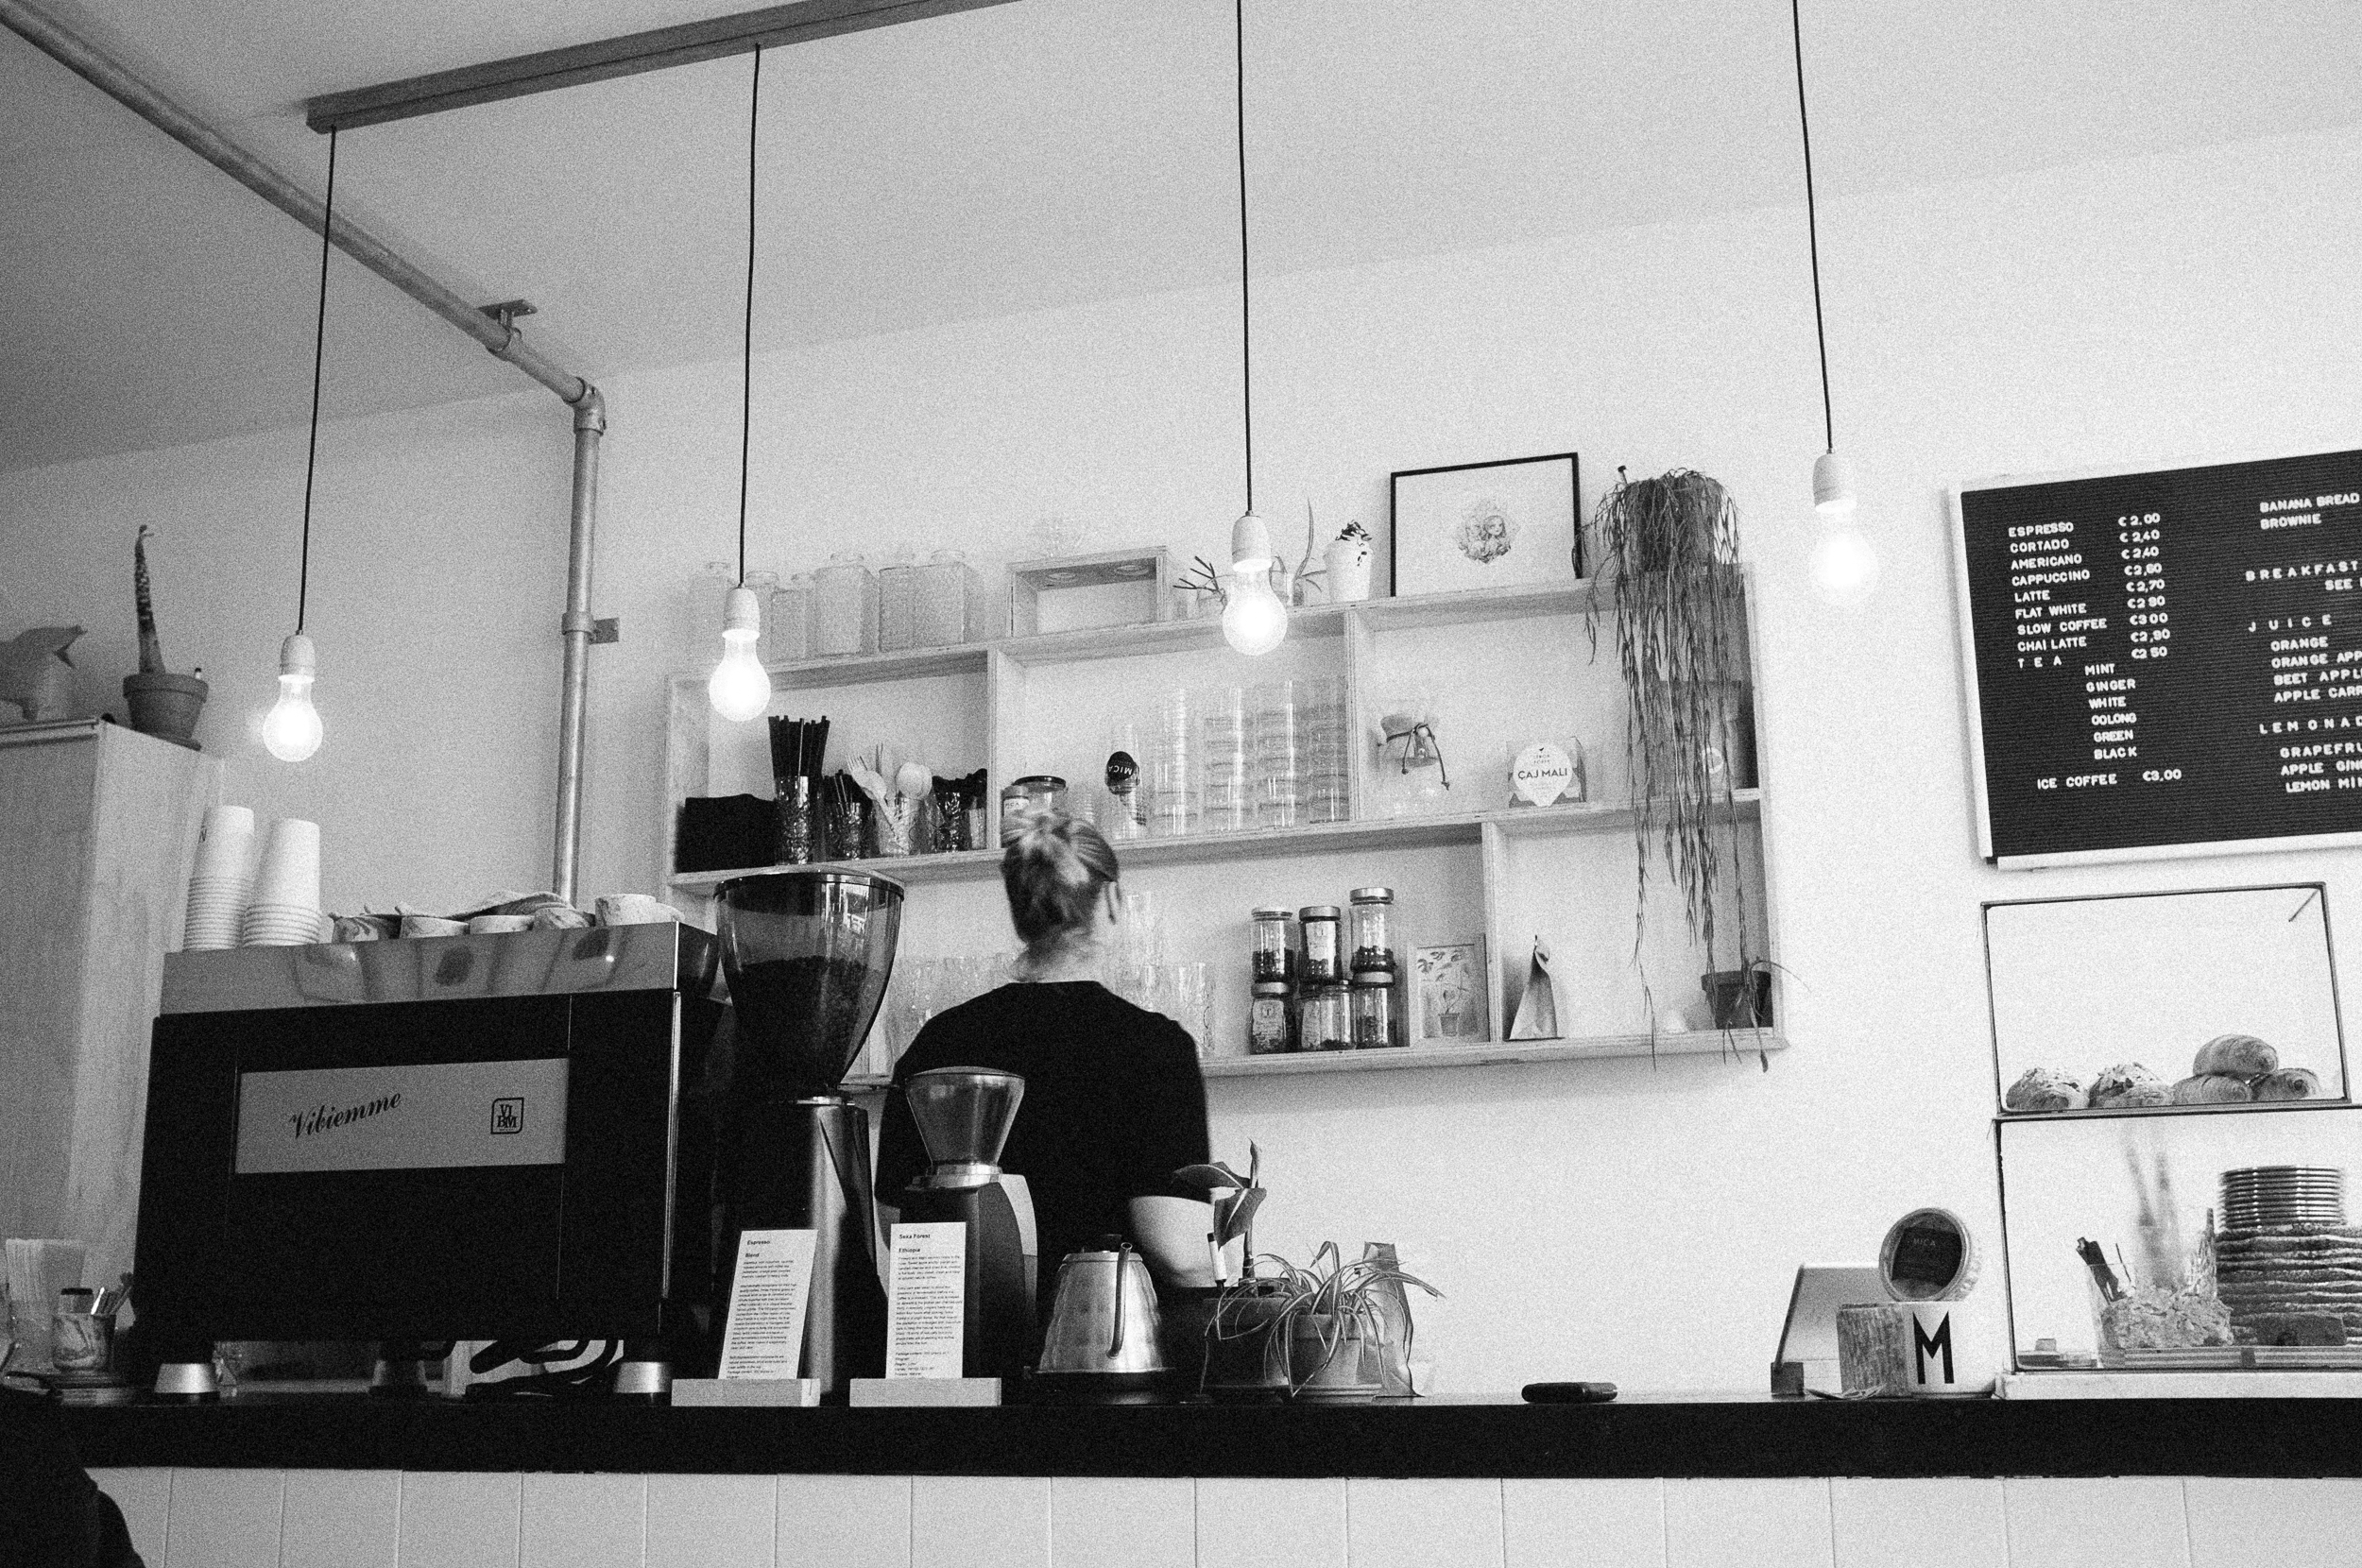 MICA Coffee Bar, Haarlem.Photo taken with Fuji X100S, edited with VSCO.